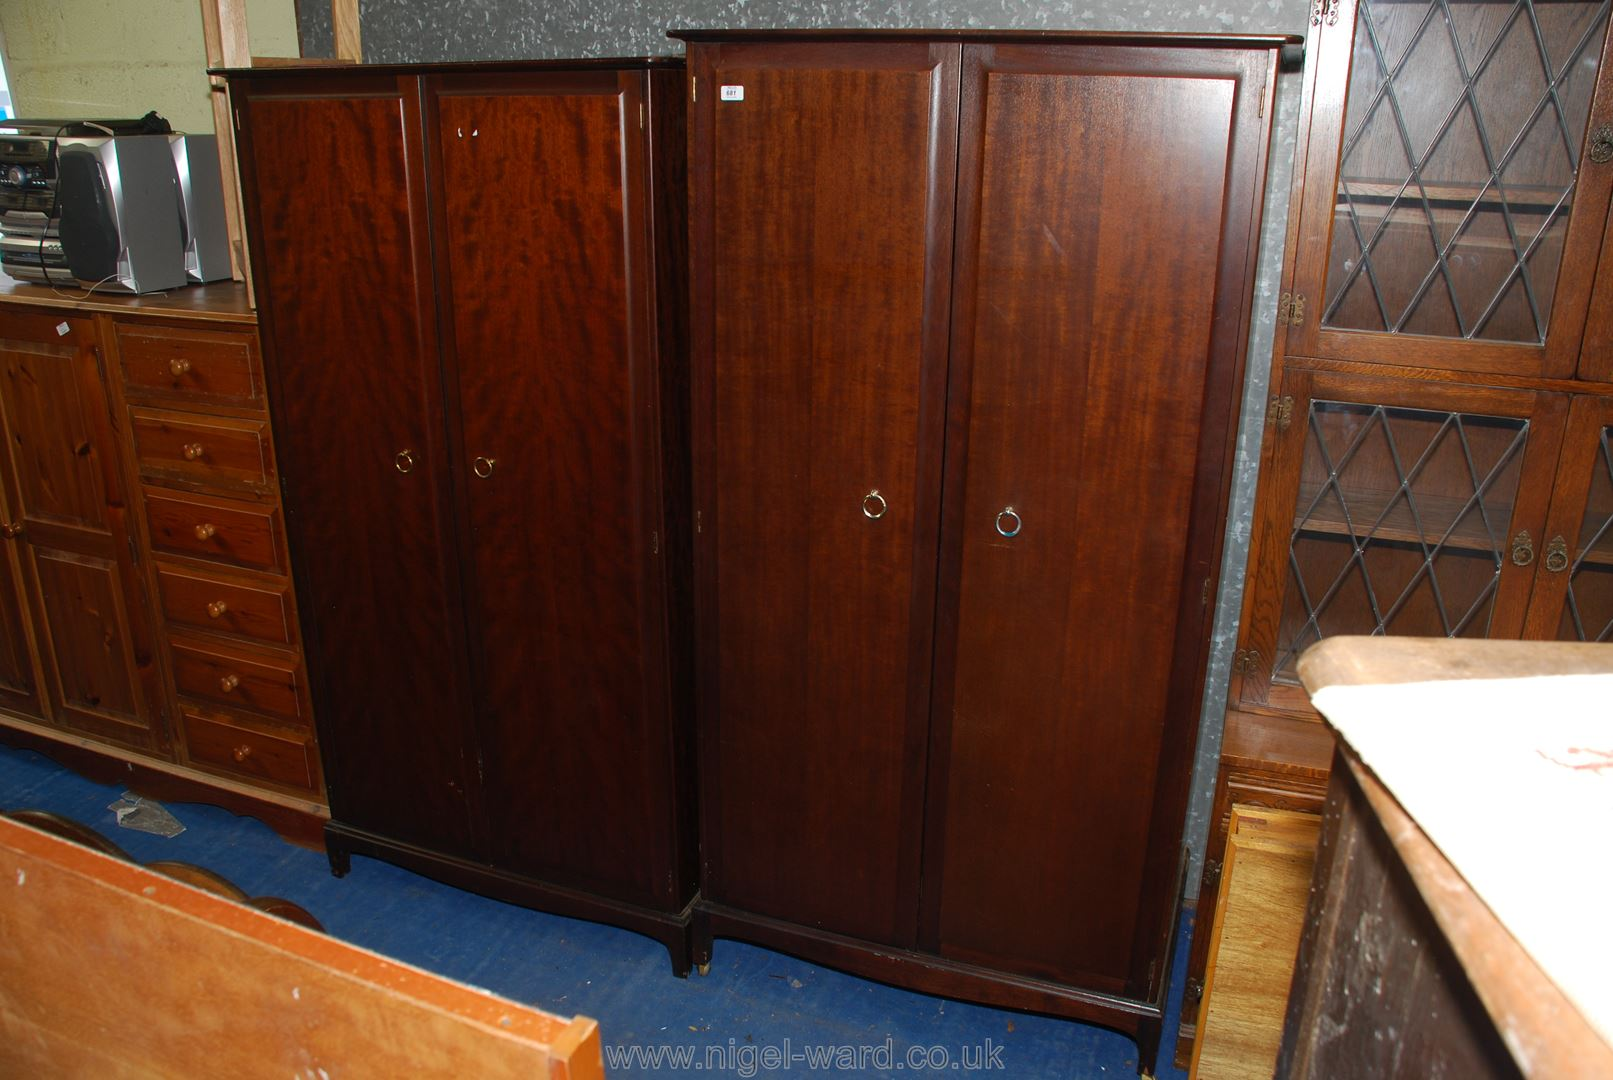 Two Stag double wardrobes